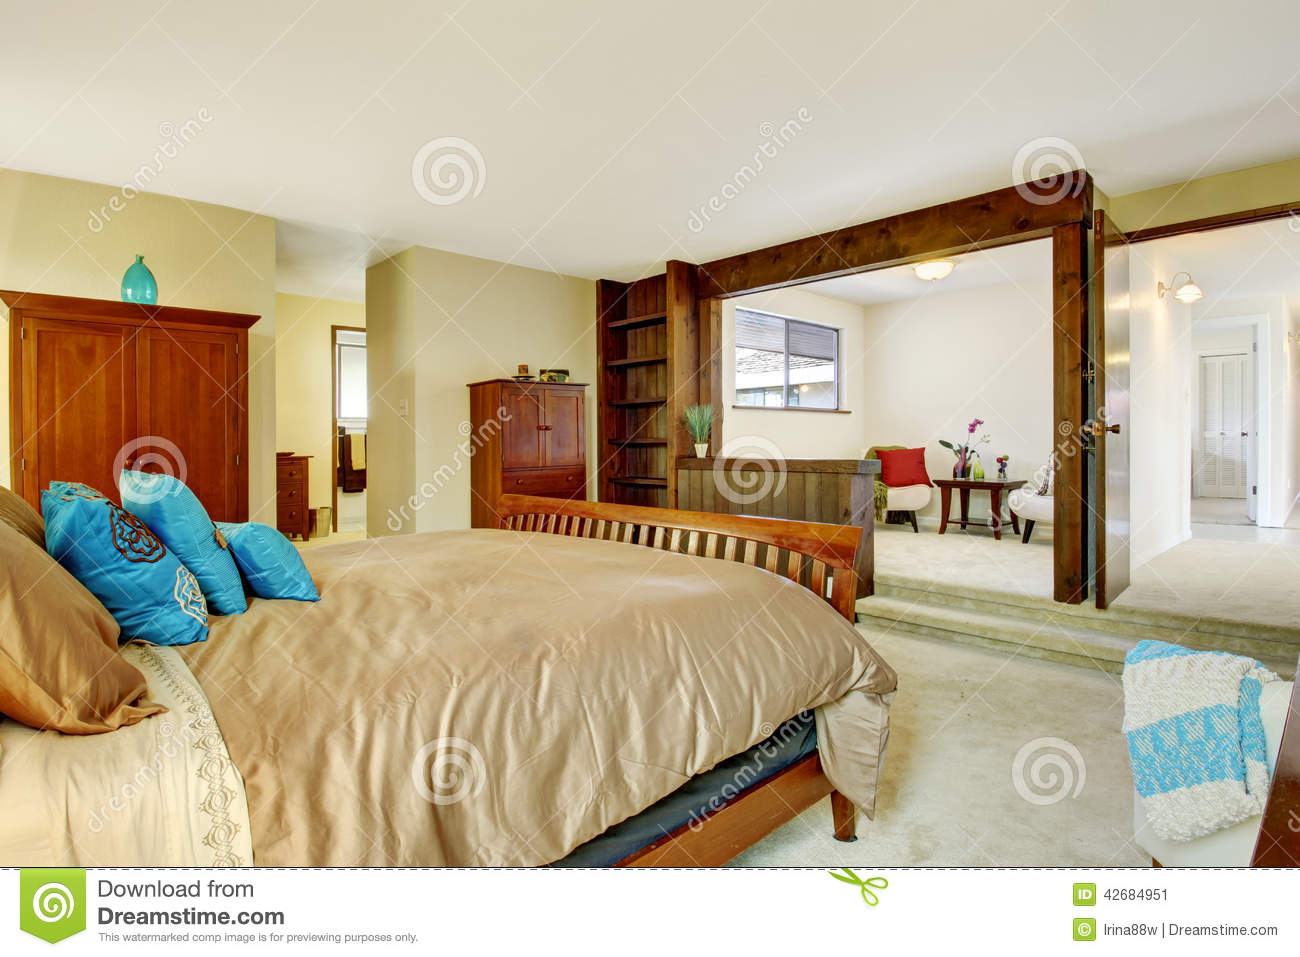 Coin Chambre Dans Petit Salon beautiful bedroom interior with sitting area stock image